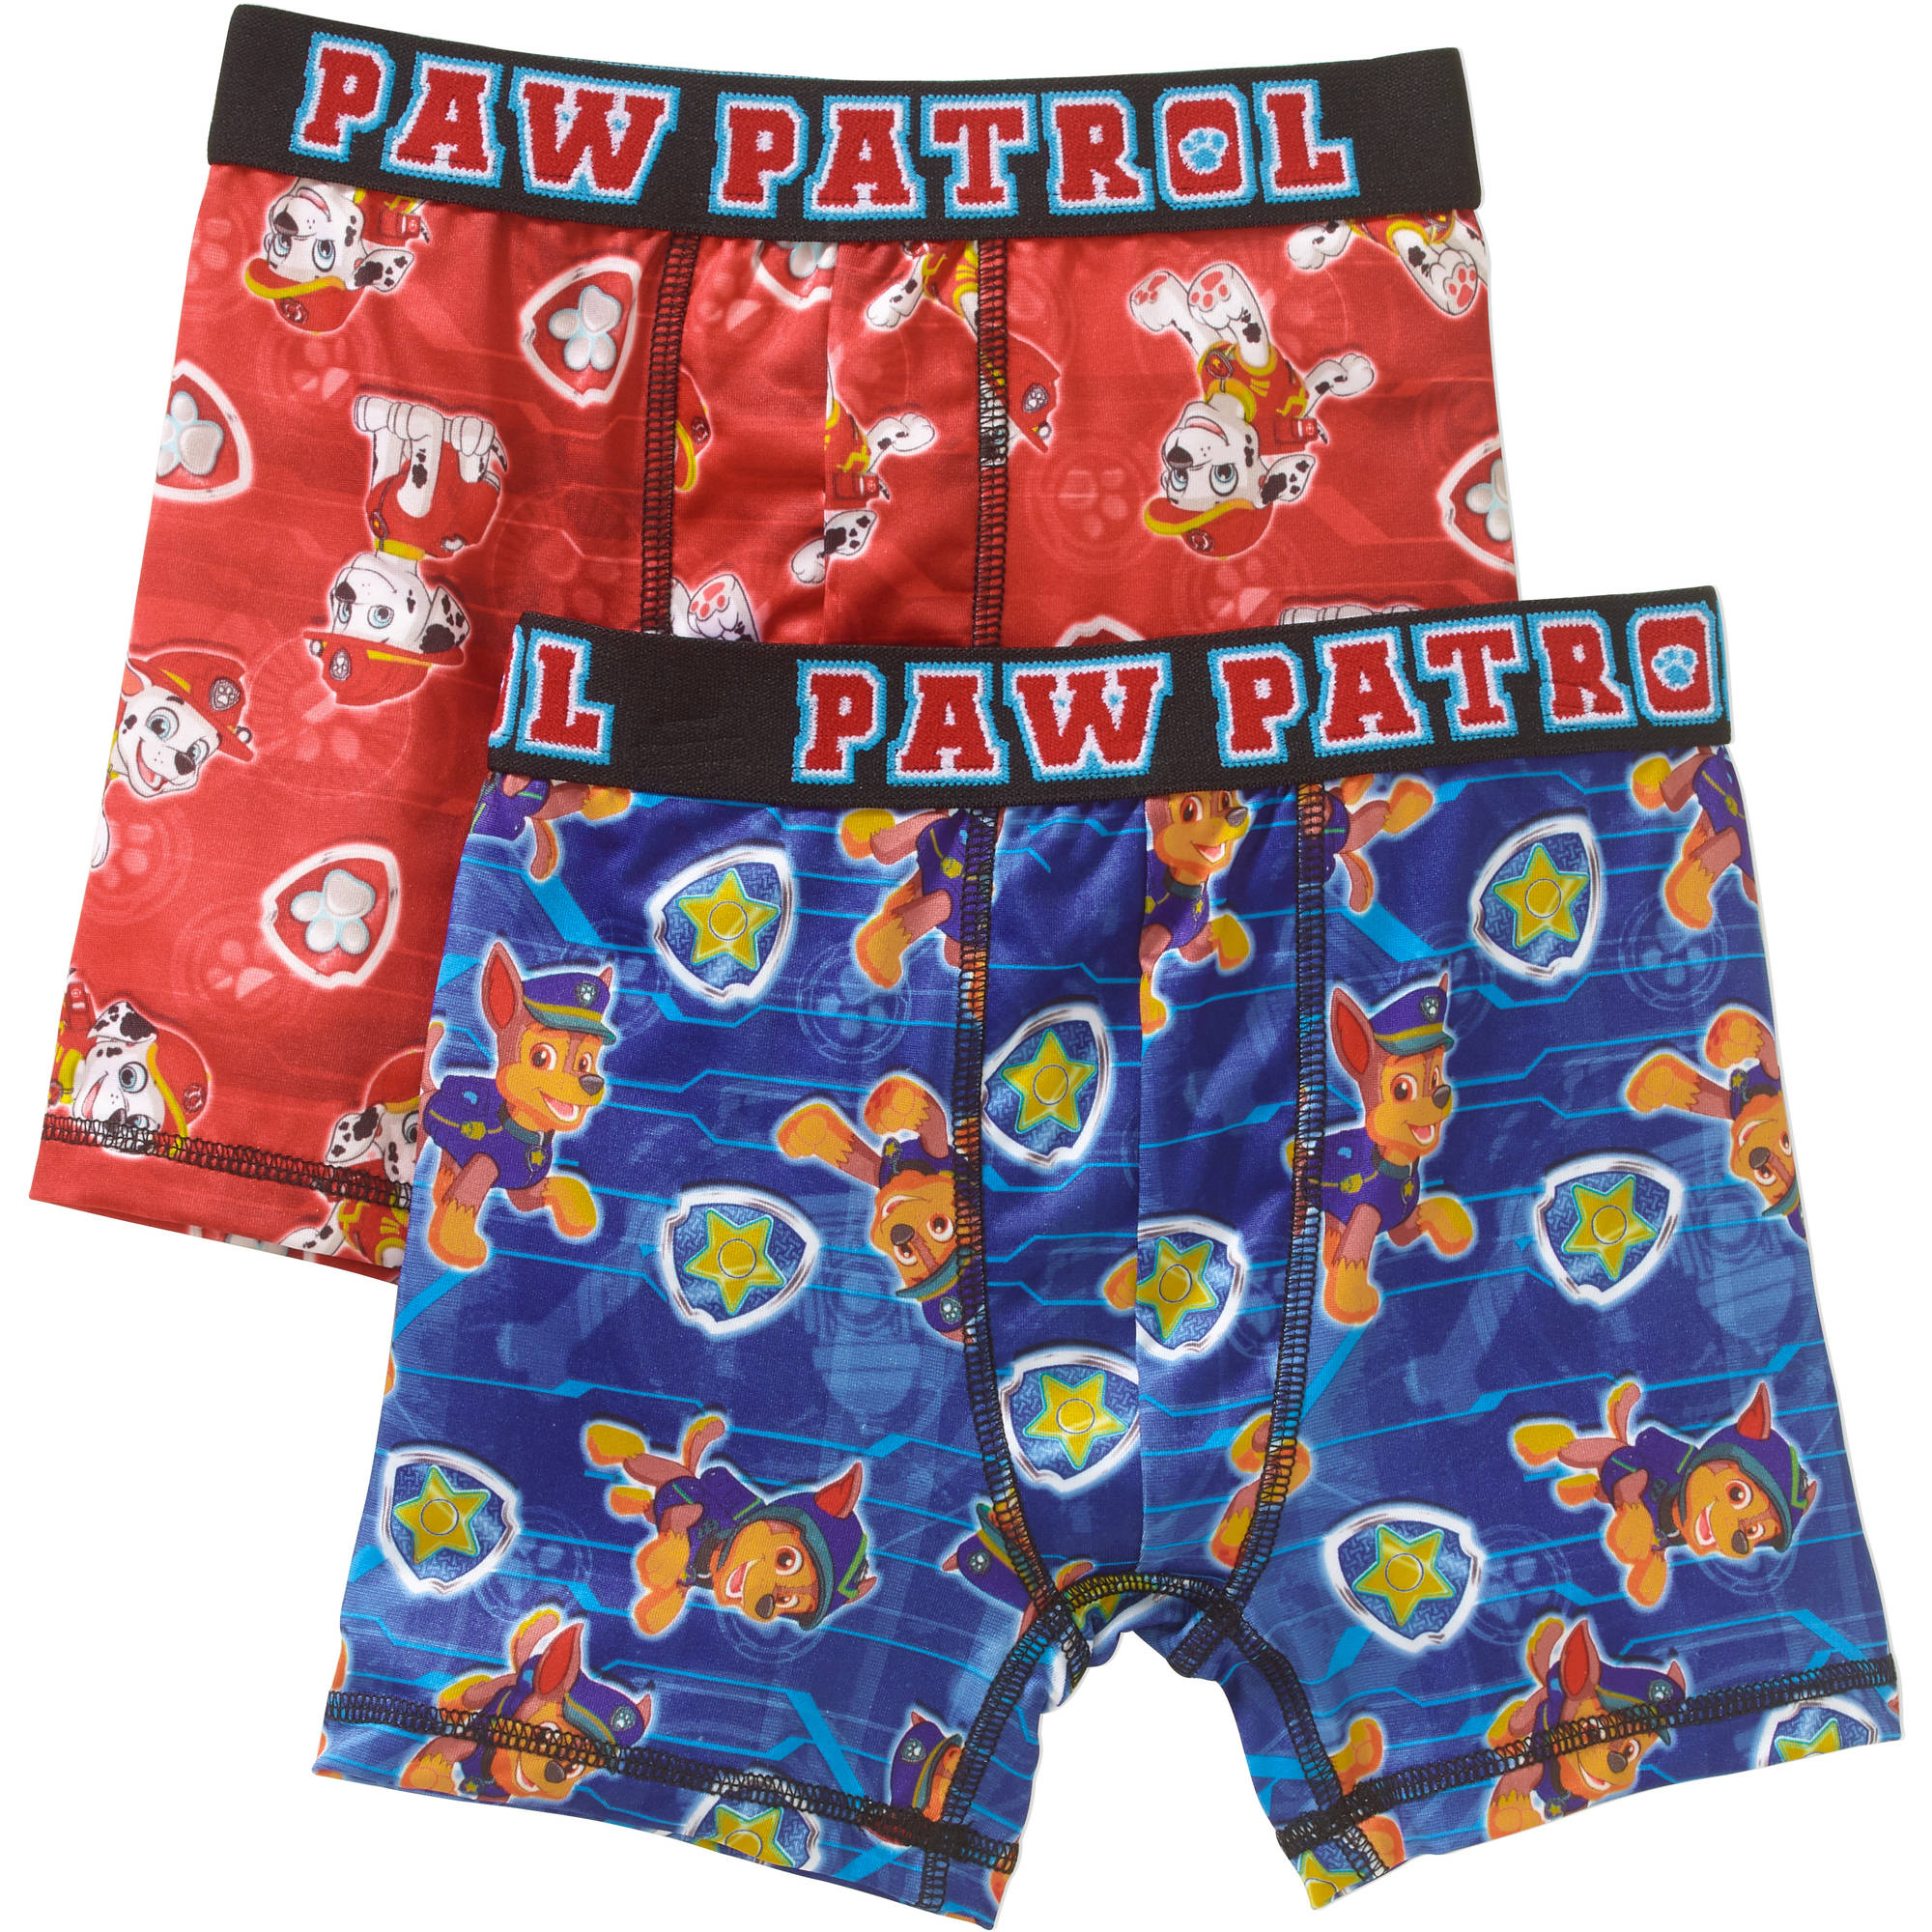 Paw Patrol Boys Boxer Brief 2-Pack